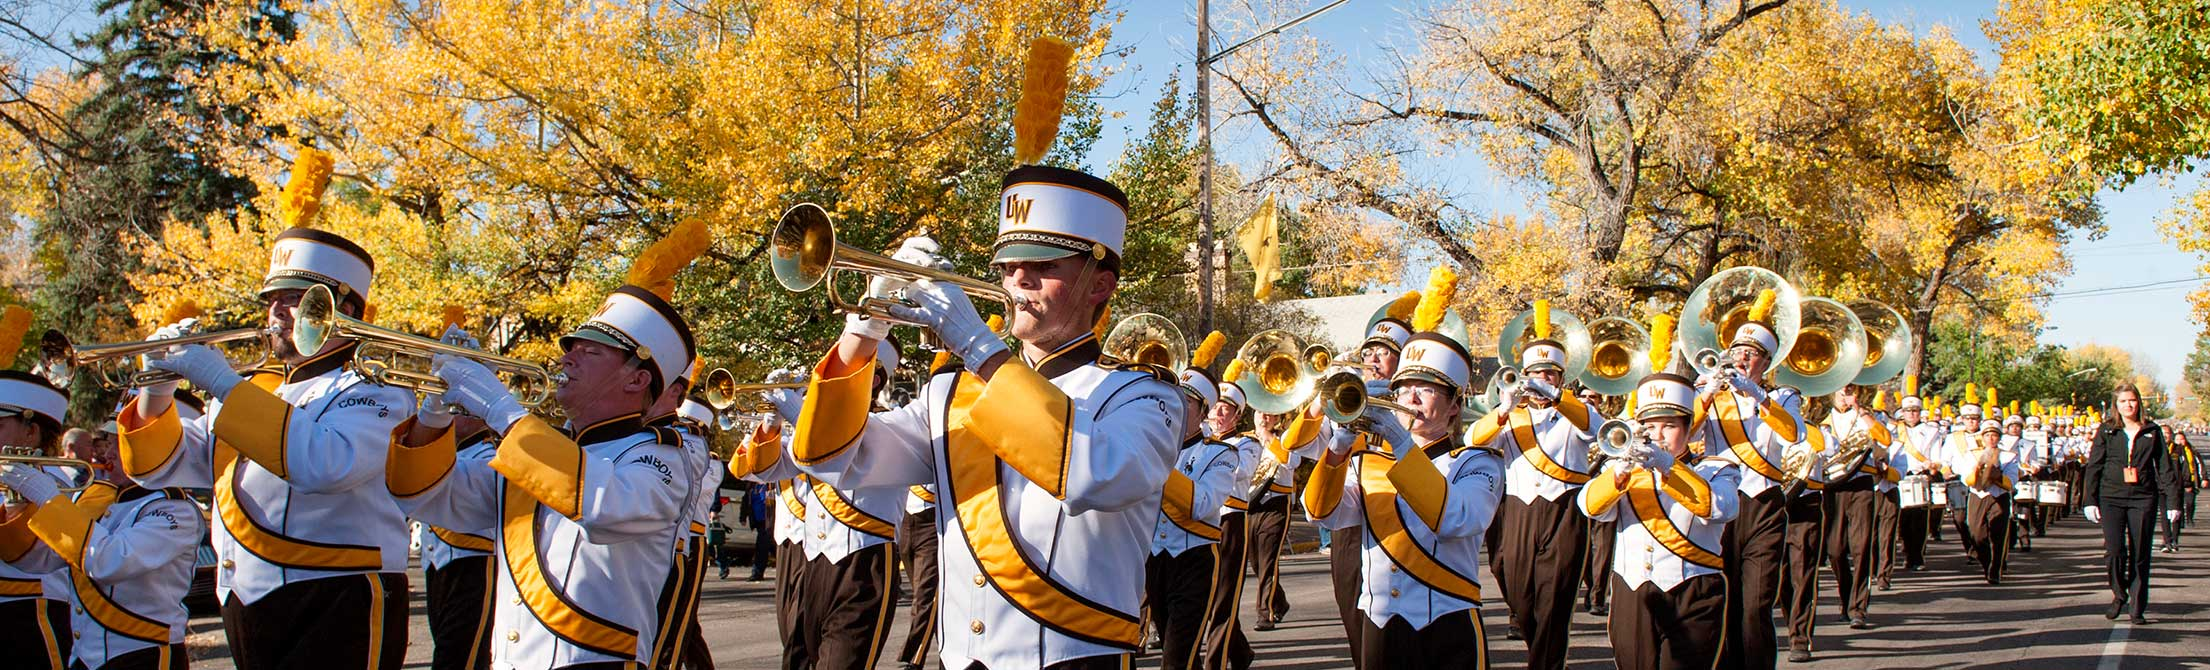 Marching Band playing during a parade